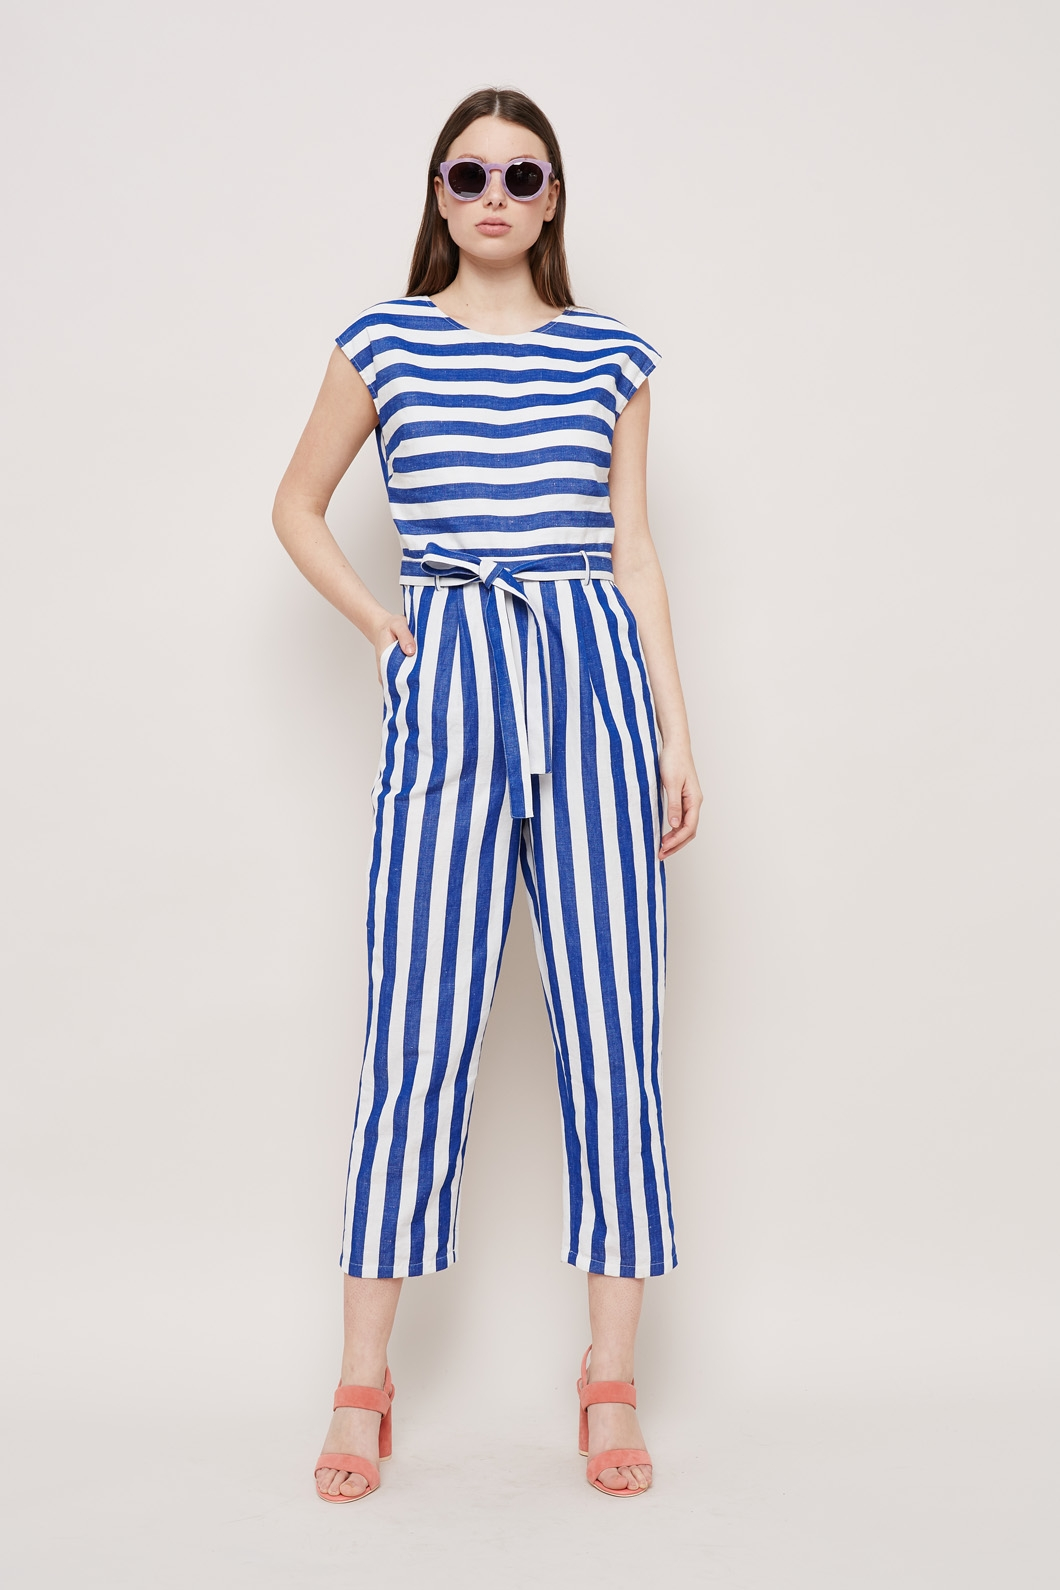 earn your stripes pantsuit (via  gormanshop )